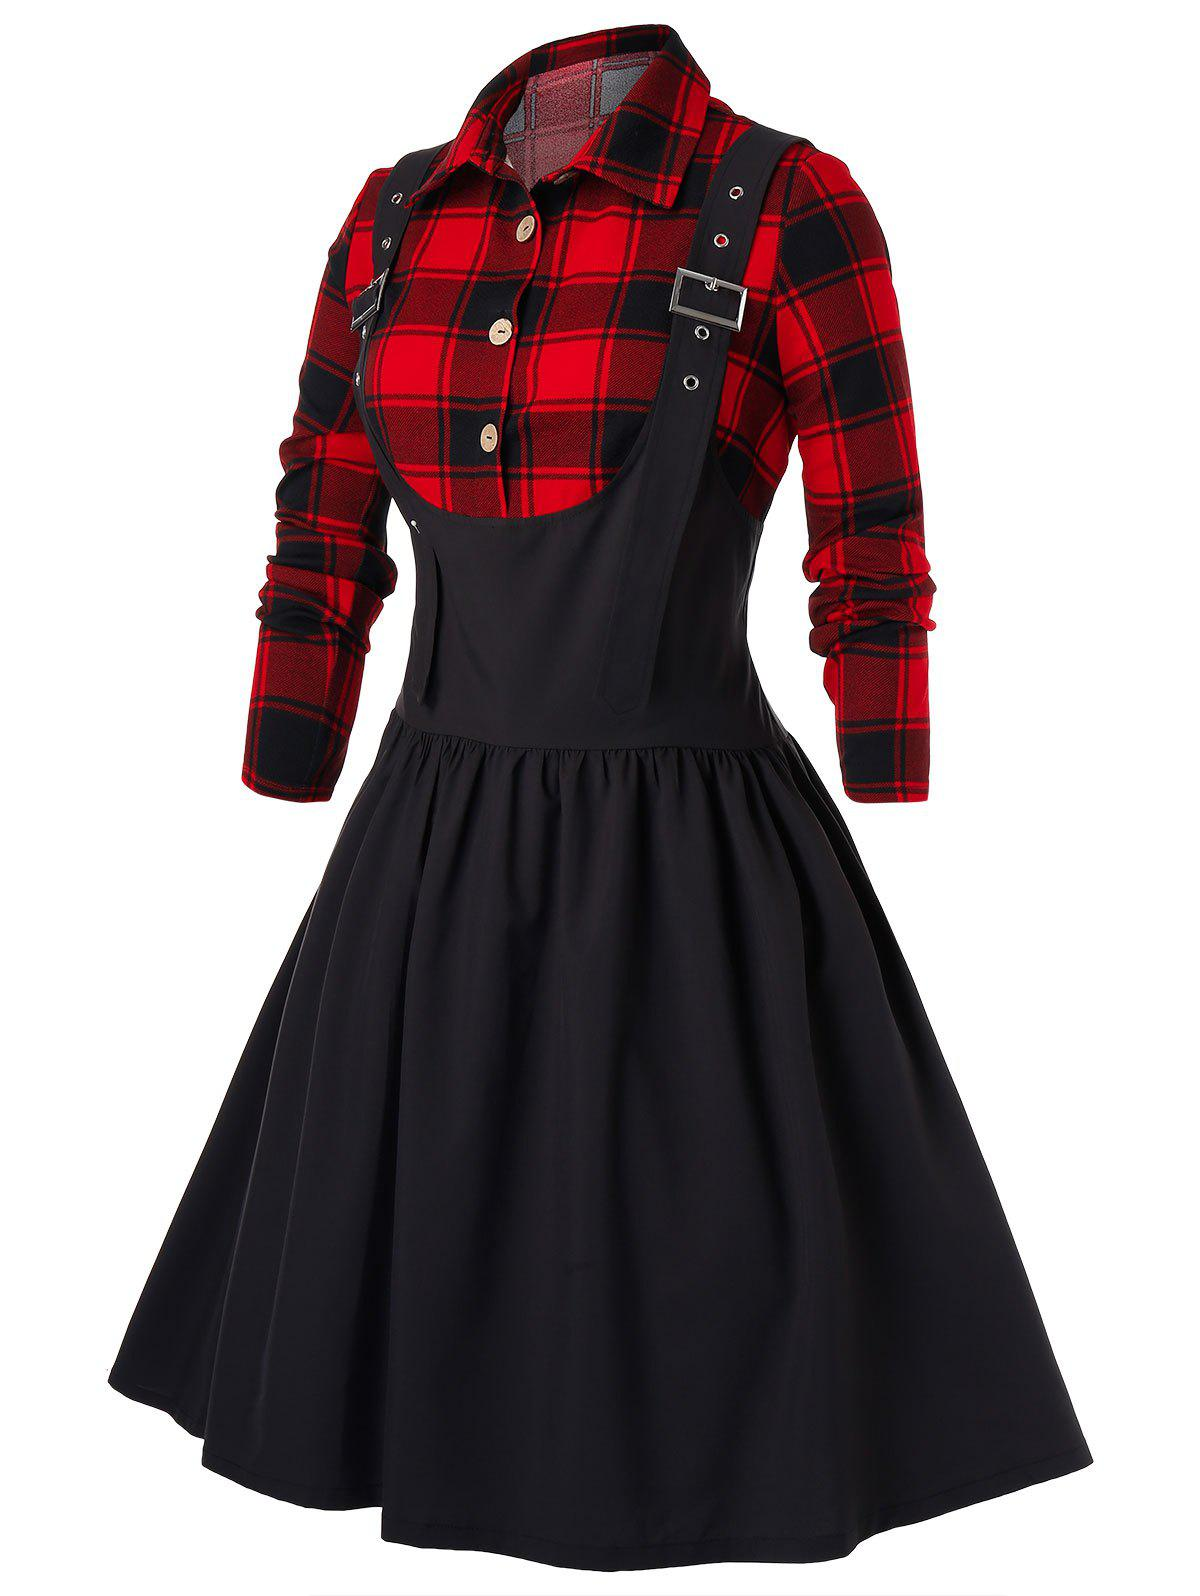 Plus Size Plaid Dress Up Buckles Pin - Noir 5X